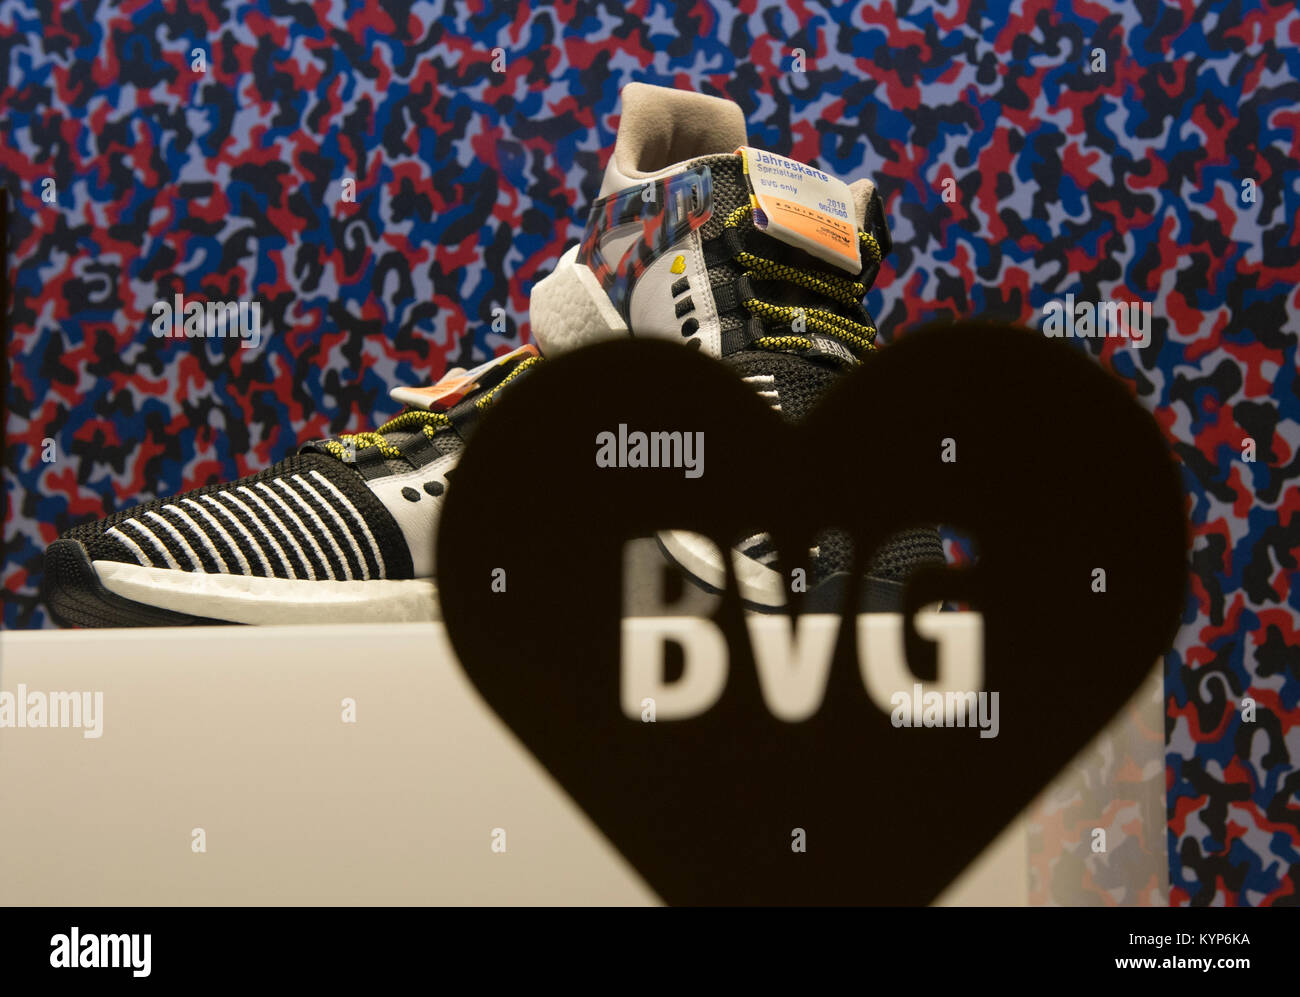 elige auténtico diseños atractivos comprar genuino A pair of the coveted Adidas sneakers with a built-in BVG (Berlin ...